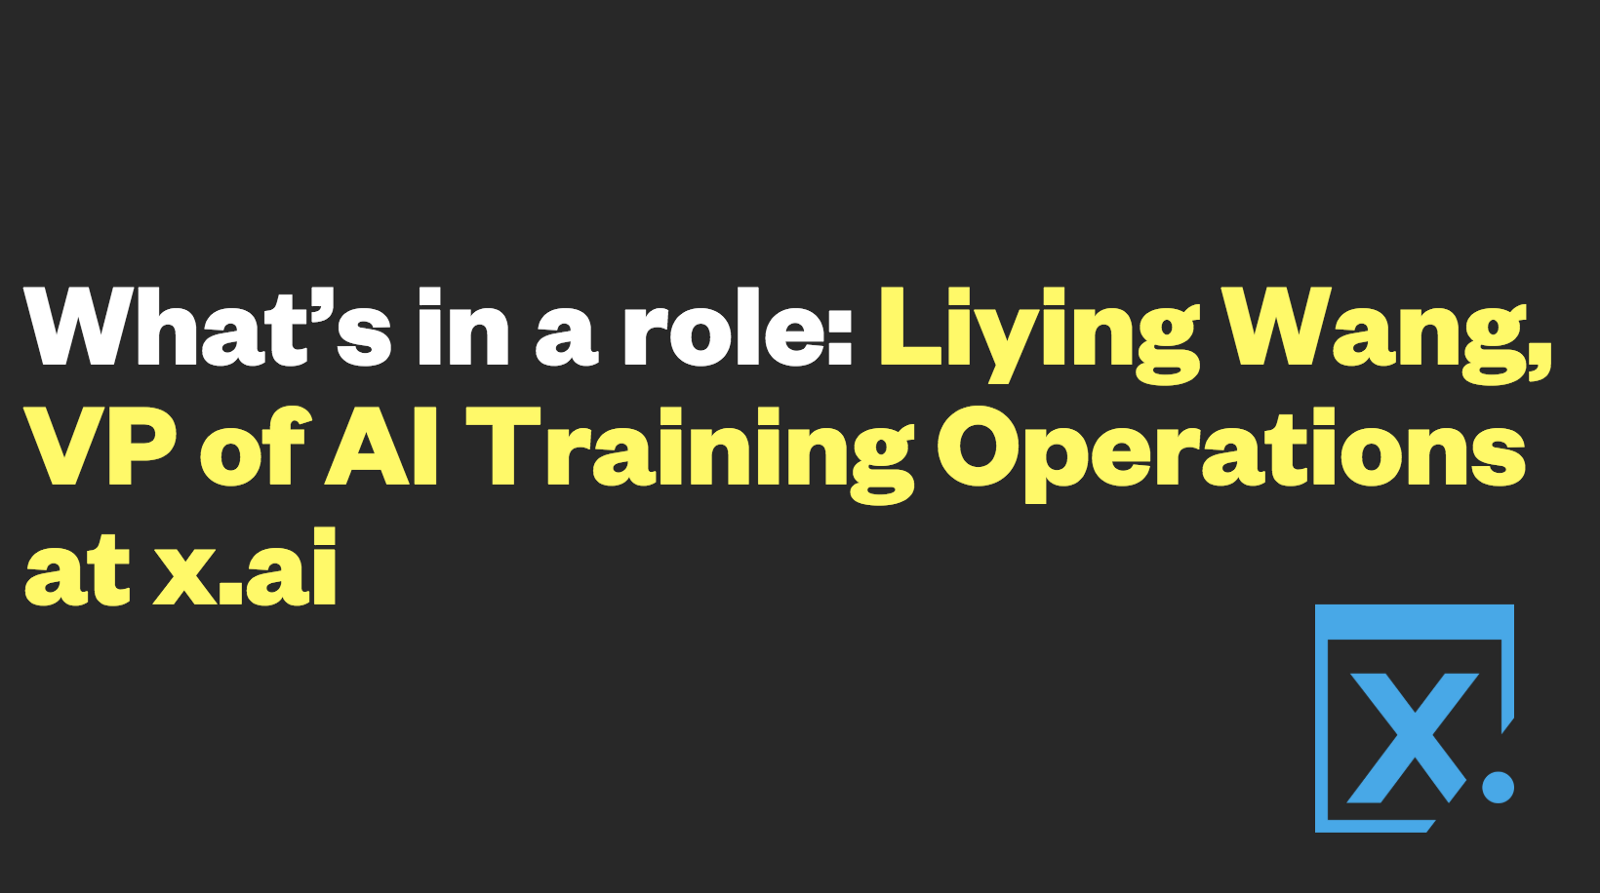 /whats-in-a-role-liying-wang-vp-of-ai-training-operations-at-x-ai-c713f067b8a2 feature image